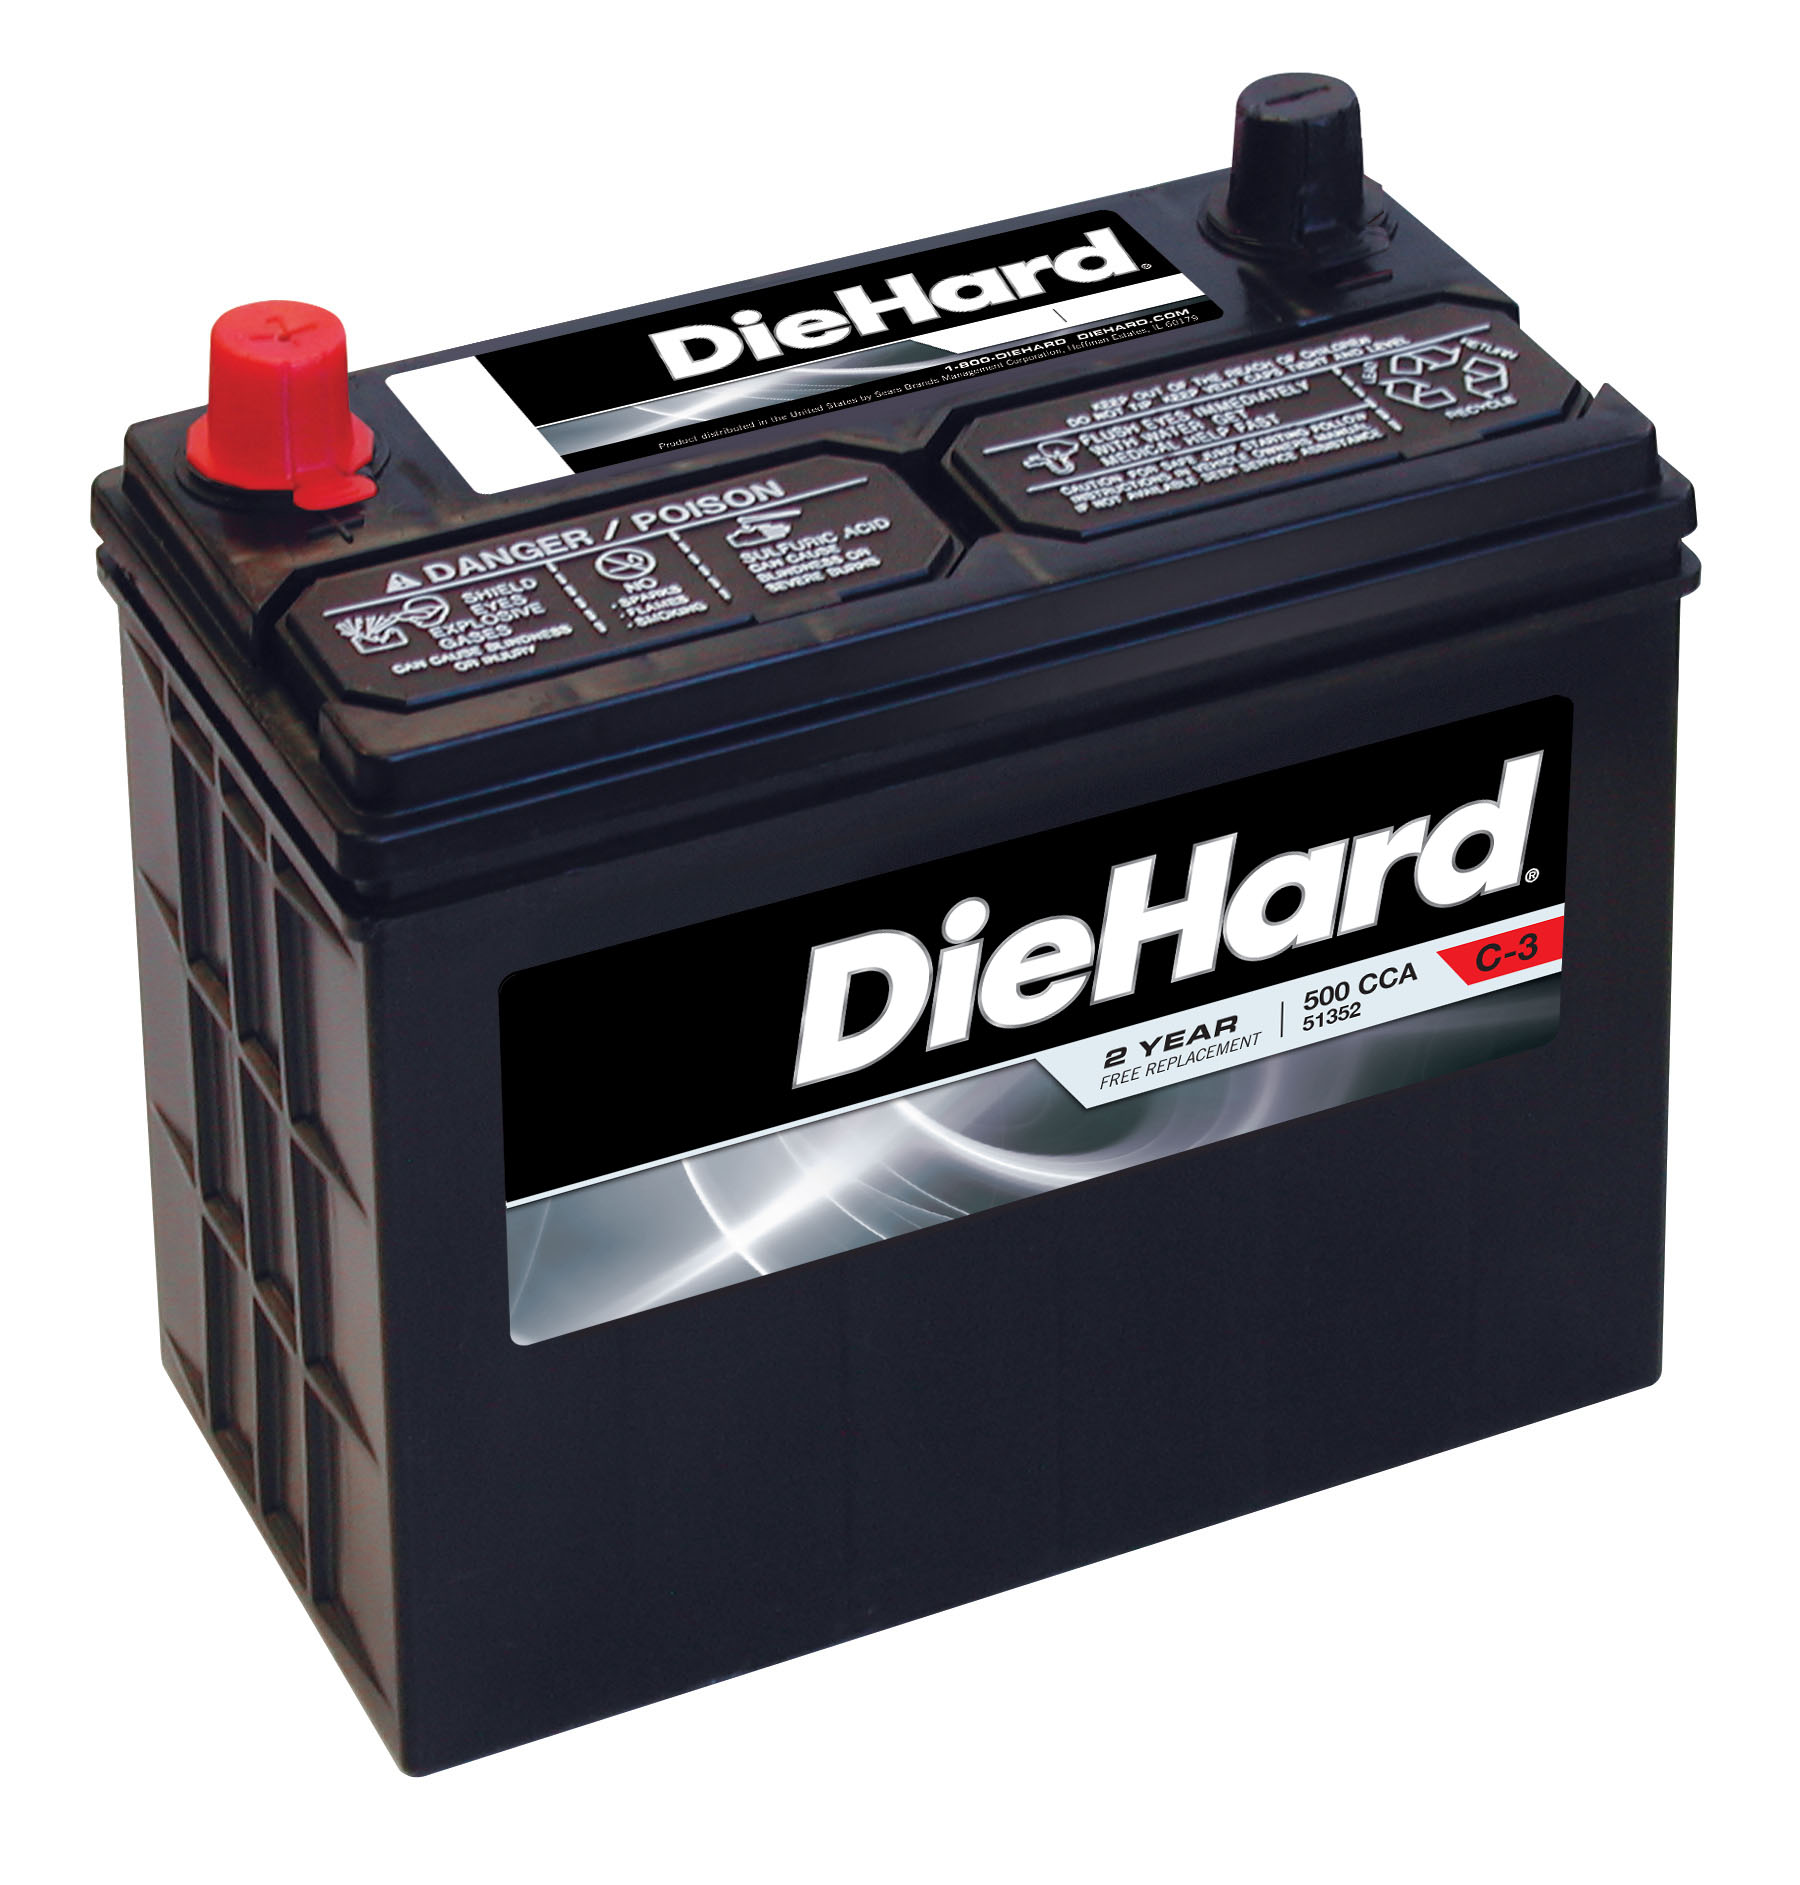 DieHard Automotive Battery Group Size JC 51R Price With